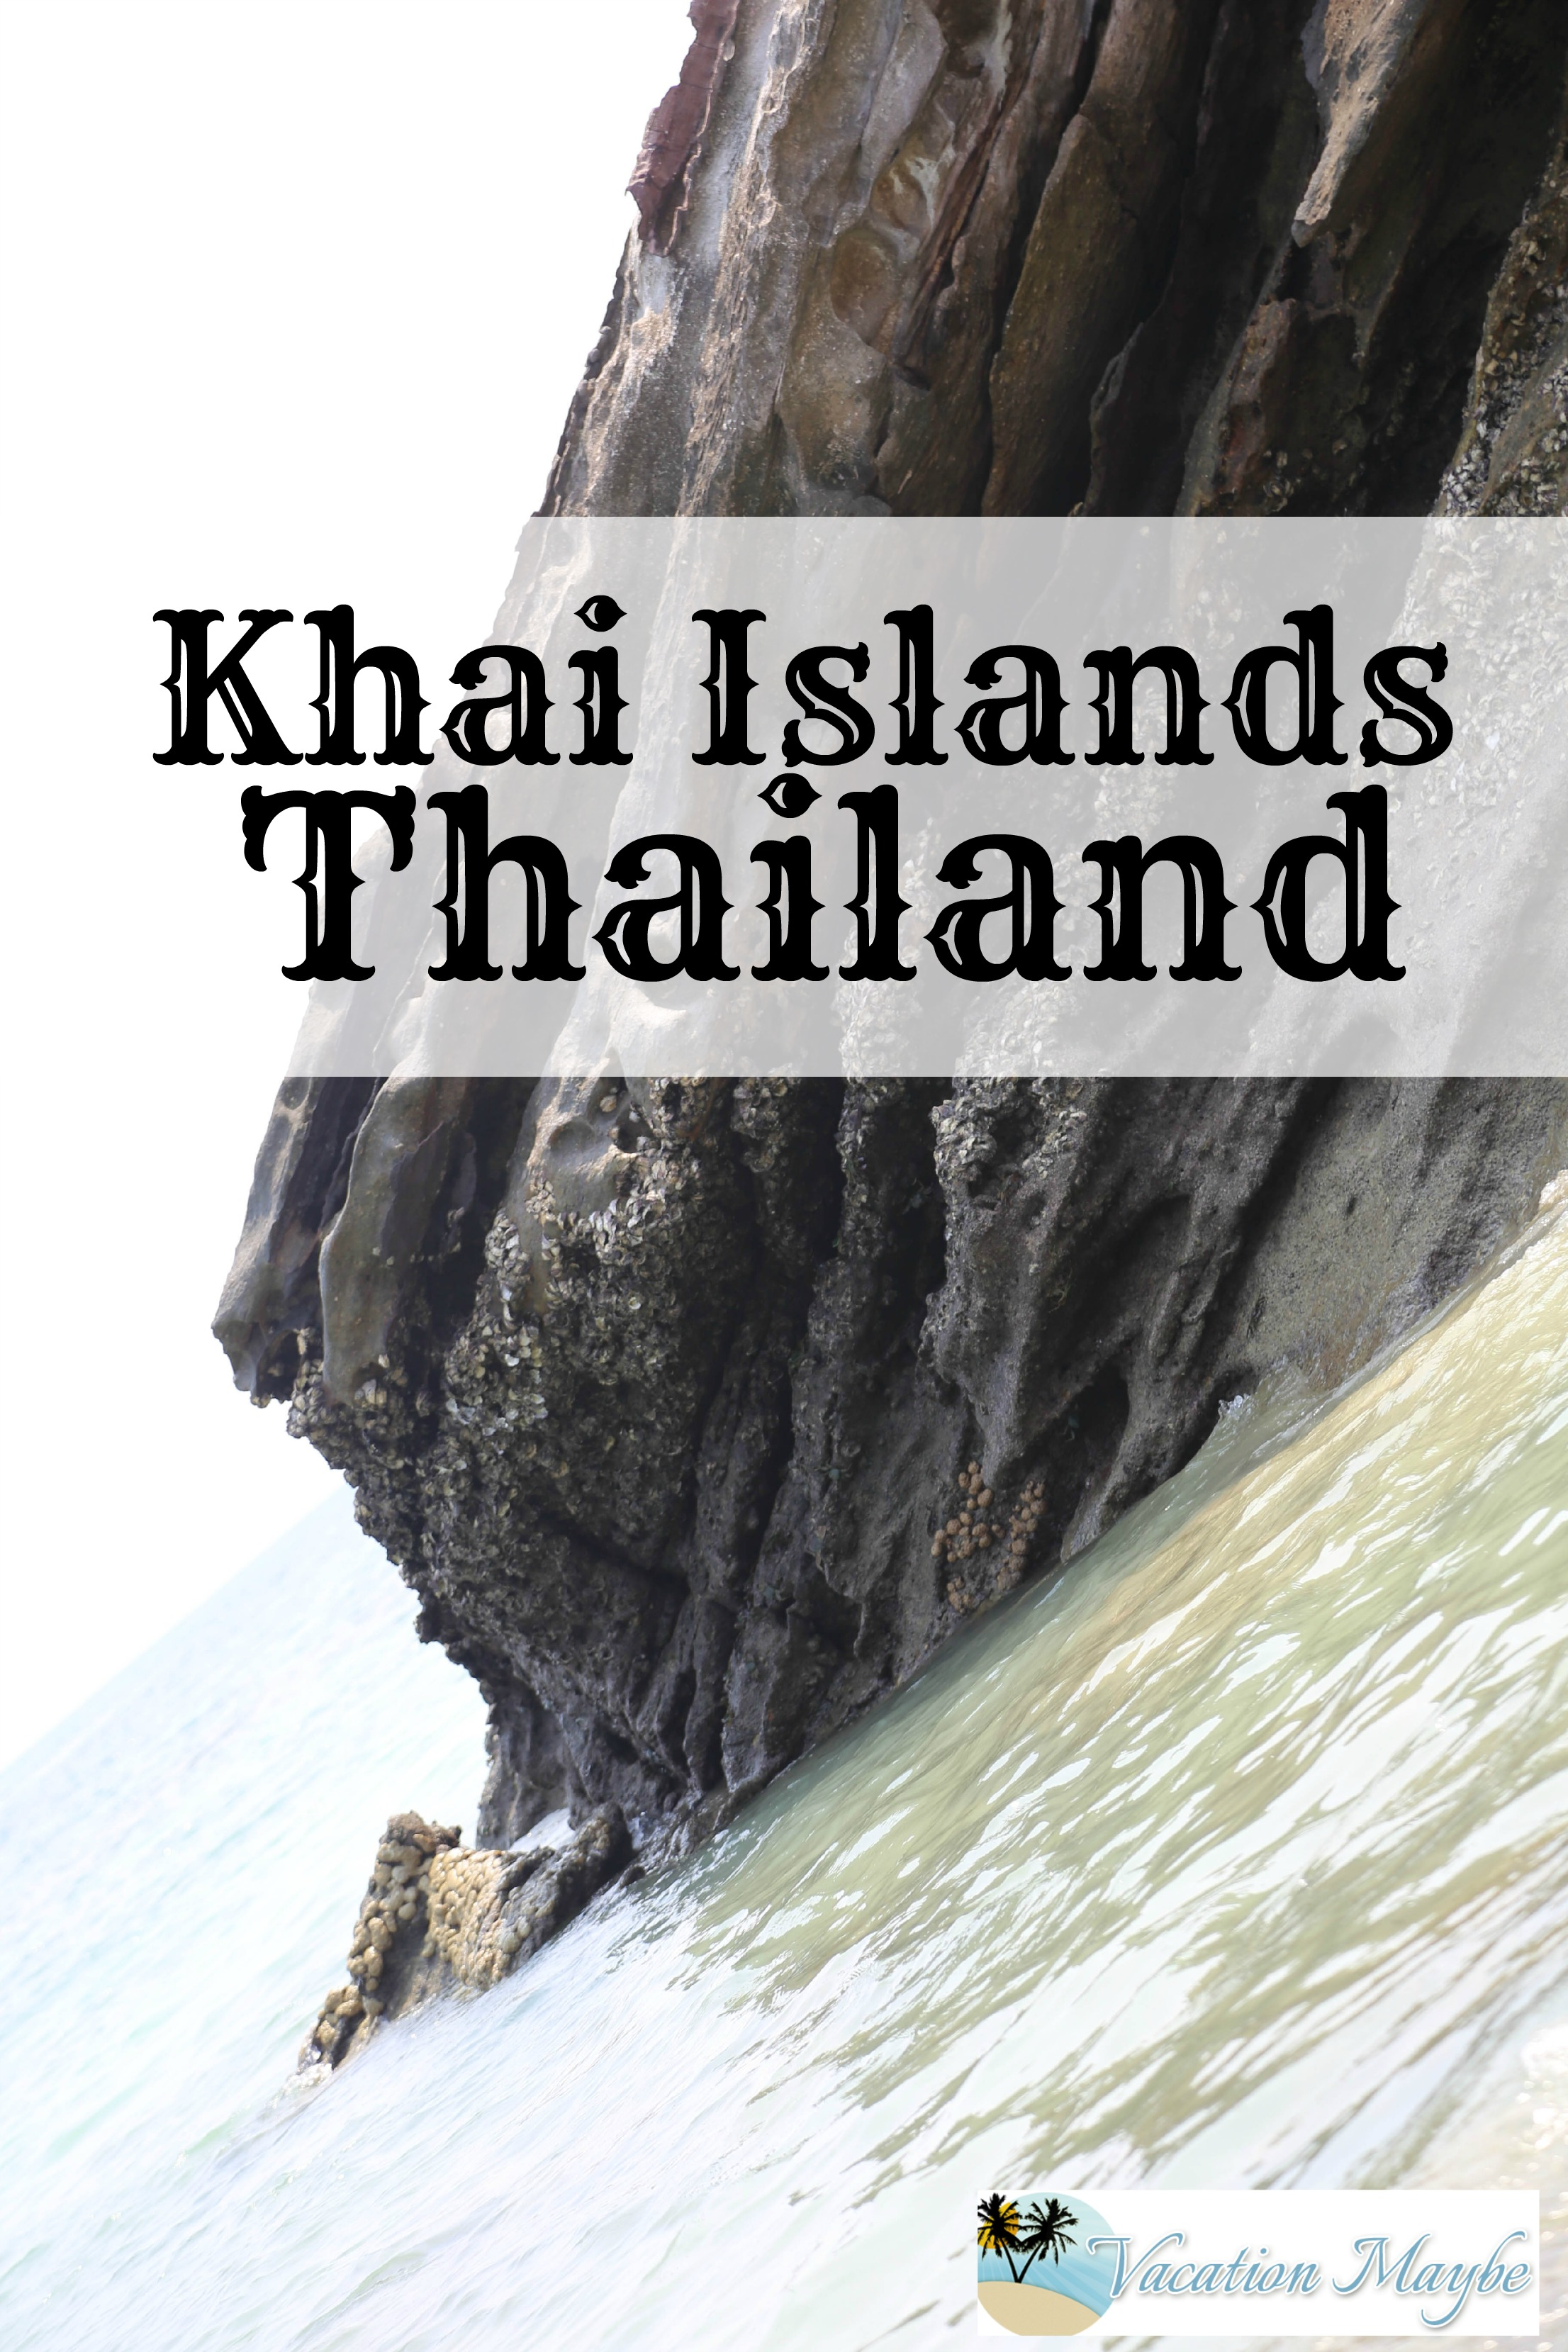 Visit the Khai Islands Thailand